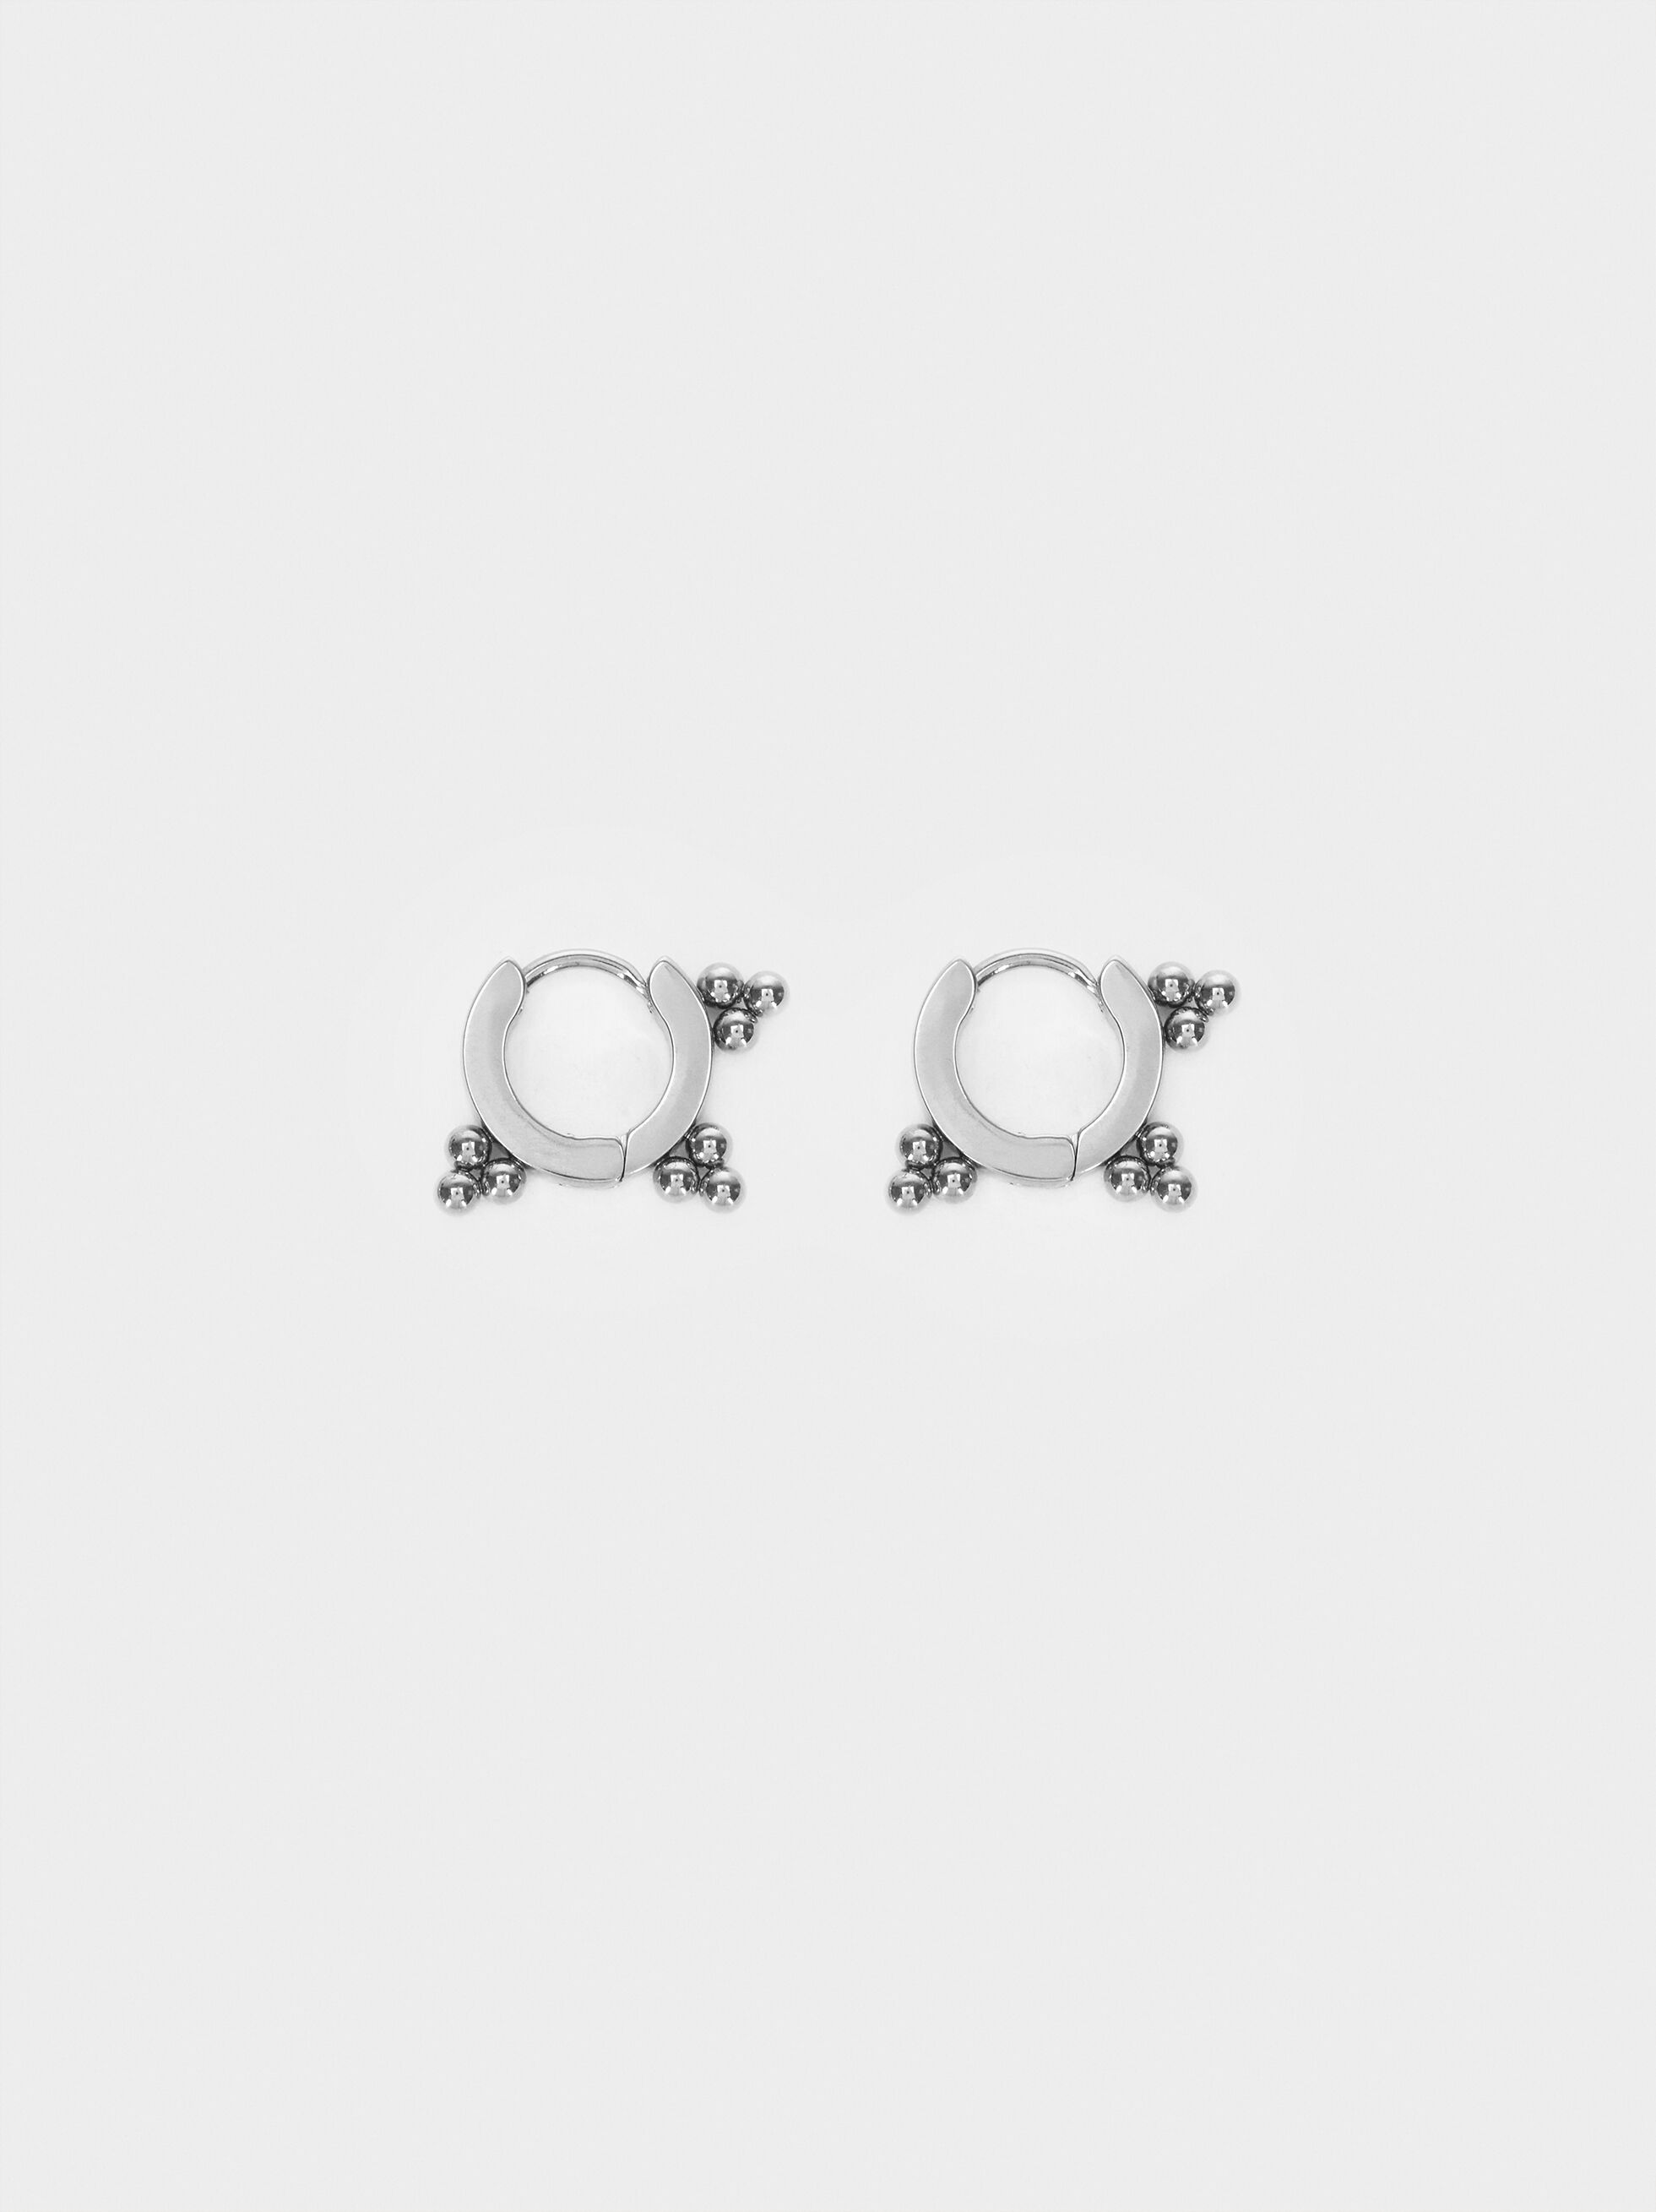 Silver Stainless Steel Small Hoop Earrings, Silver, hi-res